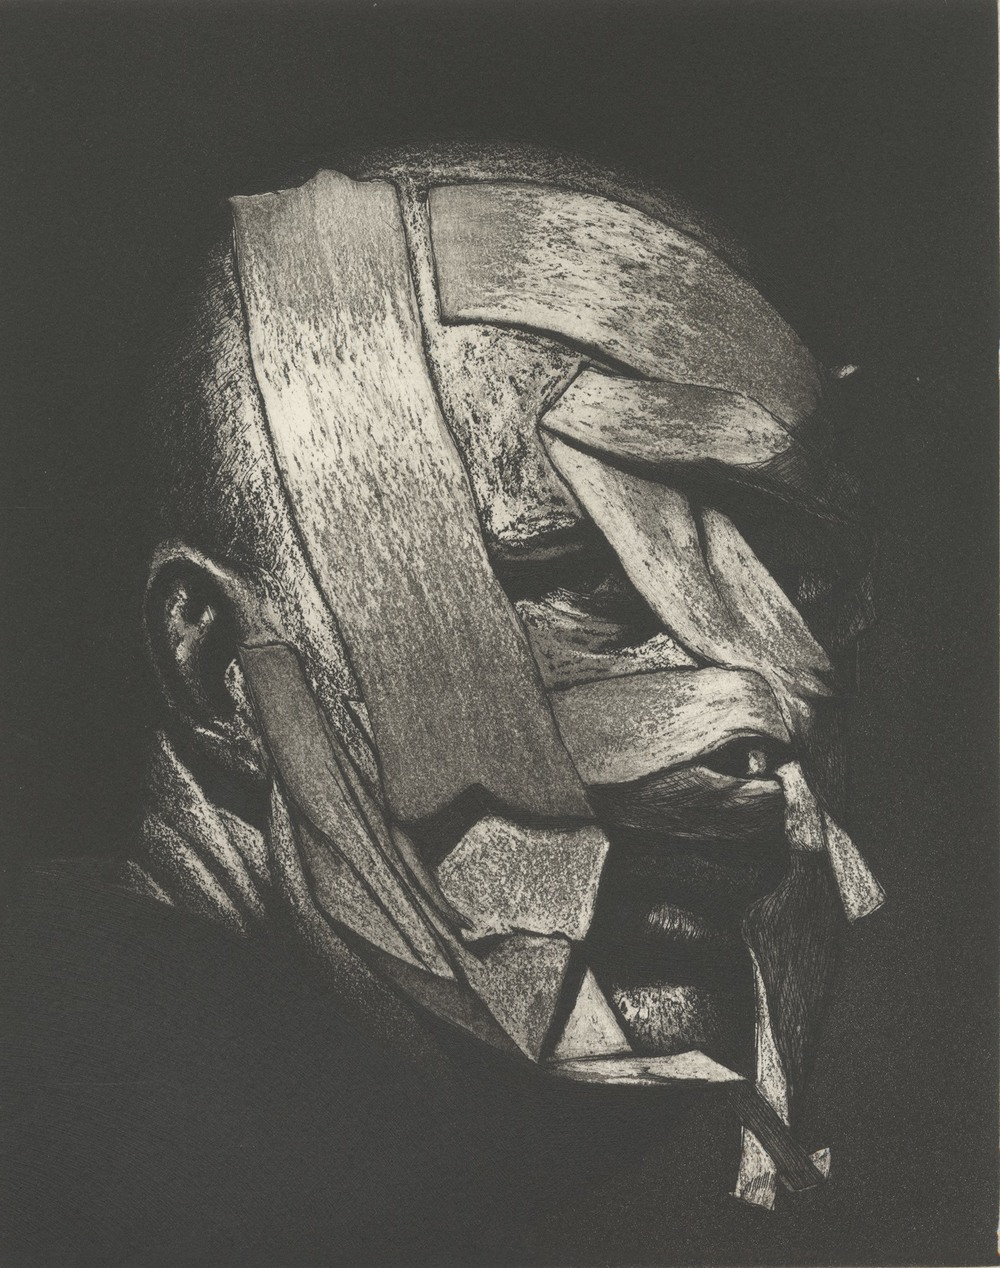 Ken Currie, Transformers, etching, 2015, © Ken Currie. Image courtesy Flowers London and New York. Published by Glasgow Print Studio